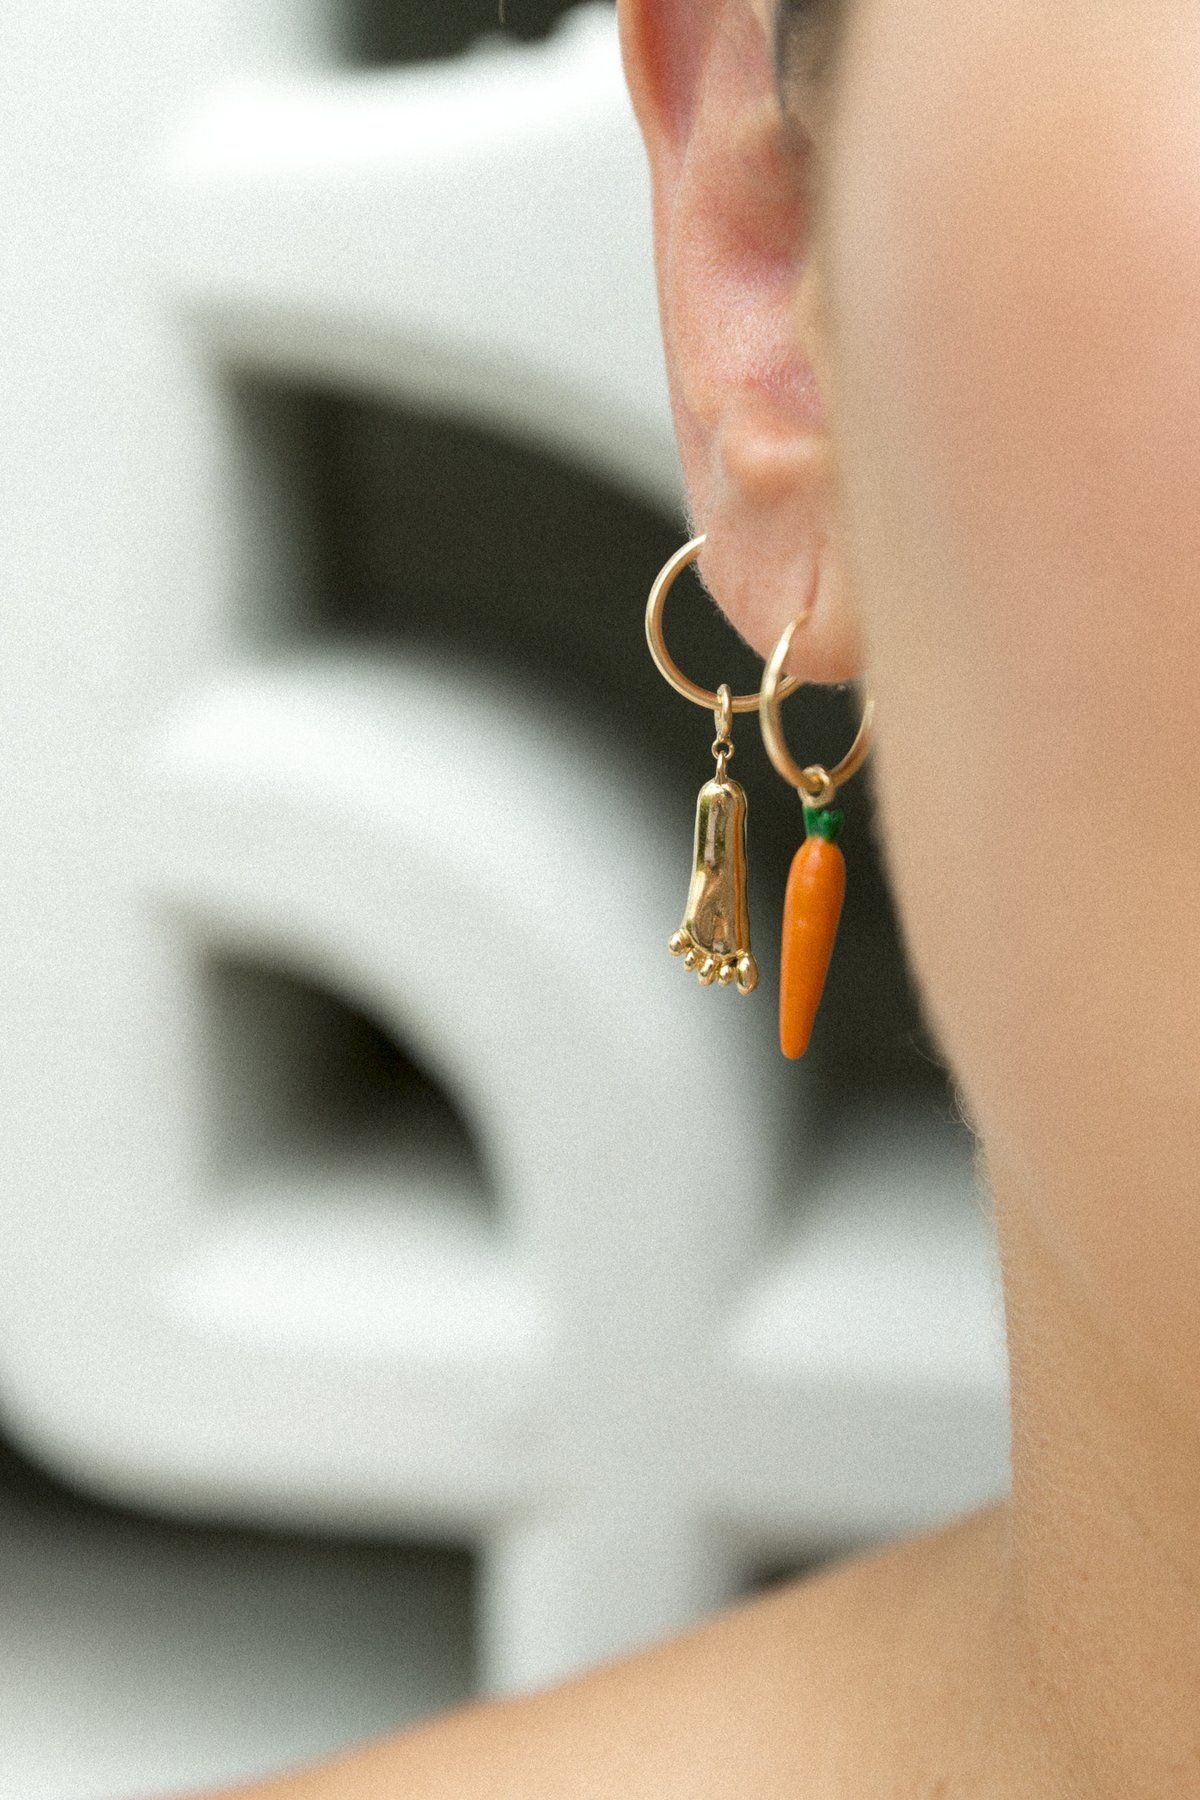 """Pilicarota Earring in Orange Pili Restrepo maison-de-mode.com $22,000.00 SHOP NOW """"There's a lot of talk about sustainable fashion but not as many people know that jewelry can - and should! - be sustainably made as well. Pili Restrepo is an ideal example of a cool company creating original designs while also respecting the environment and its workers. Every piece is handmade in NY by master artisans who use Fairmined, mercury-free and recycled 14K gold along with ethically-sourced stones."""" - Amanda Hearst"""